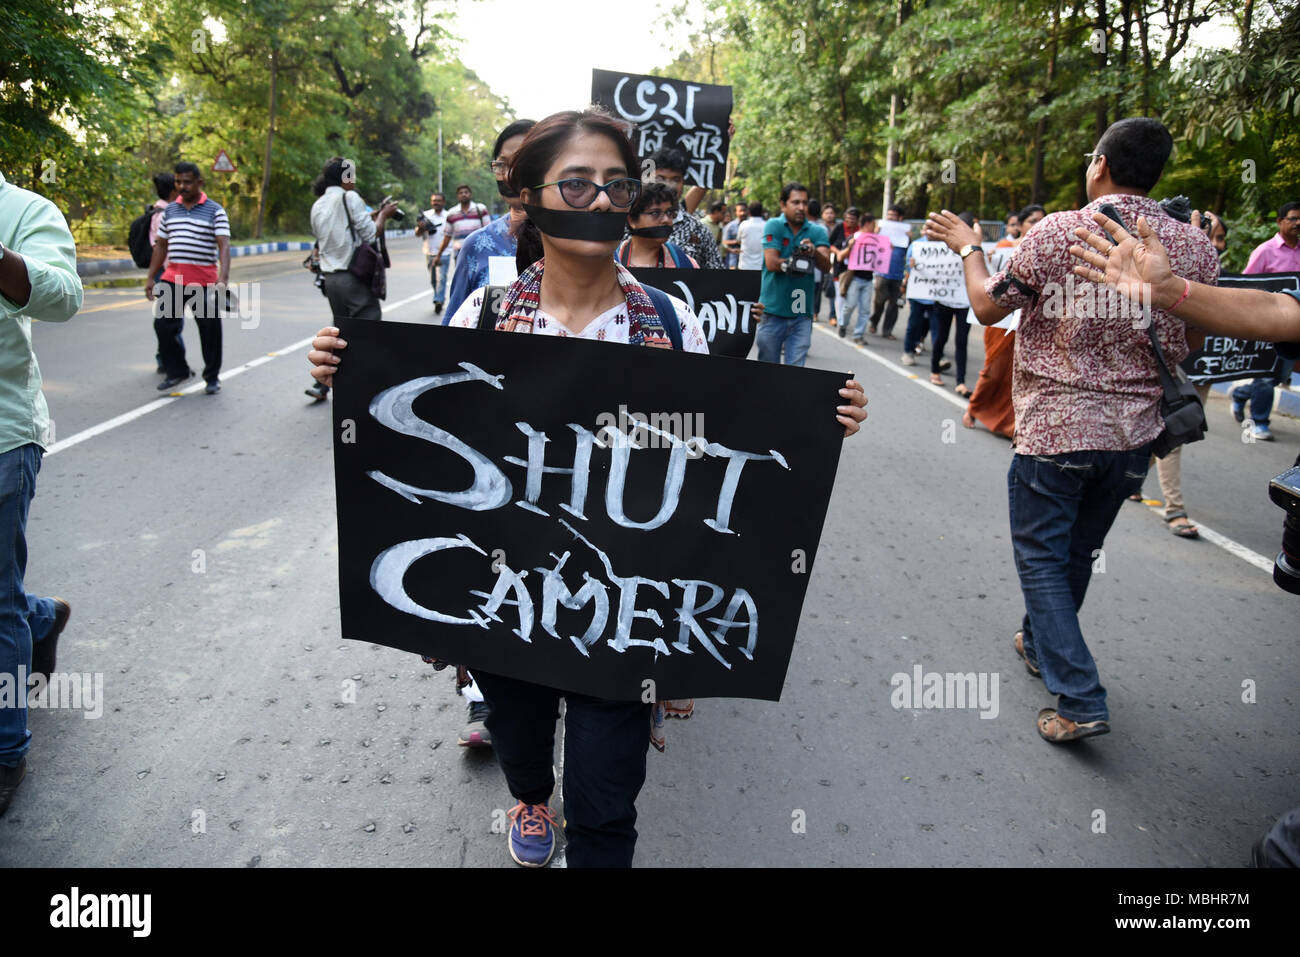 Kolkata, West Bengal, India. 11th Apr, 2018. A woman seen holding a placard during the protest.Hundreds of journalists protest against ruling party's alleged attack on journalists across Bengal during Panchayat nomination coverage. The rally started at Mayo Road Mahatma Gandhi Statue .and culminated at Dorina Crossing in Kolkata. Wearing black bands on arms and covering their mouths with black scarfs, hundreds of city's journalists, cameramen and photojournalists took part in the protest rally. Credit: ZUMA Press, Inc./Alamy Live News Stock Photo